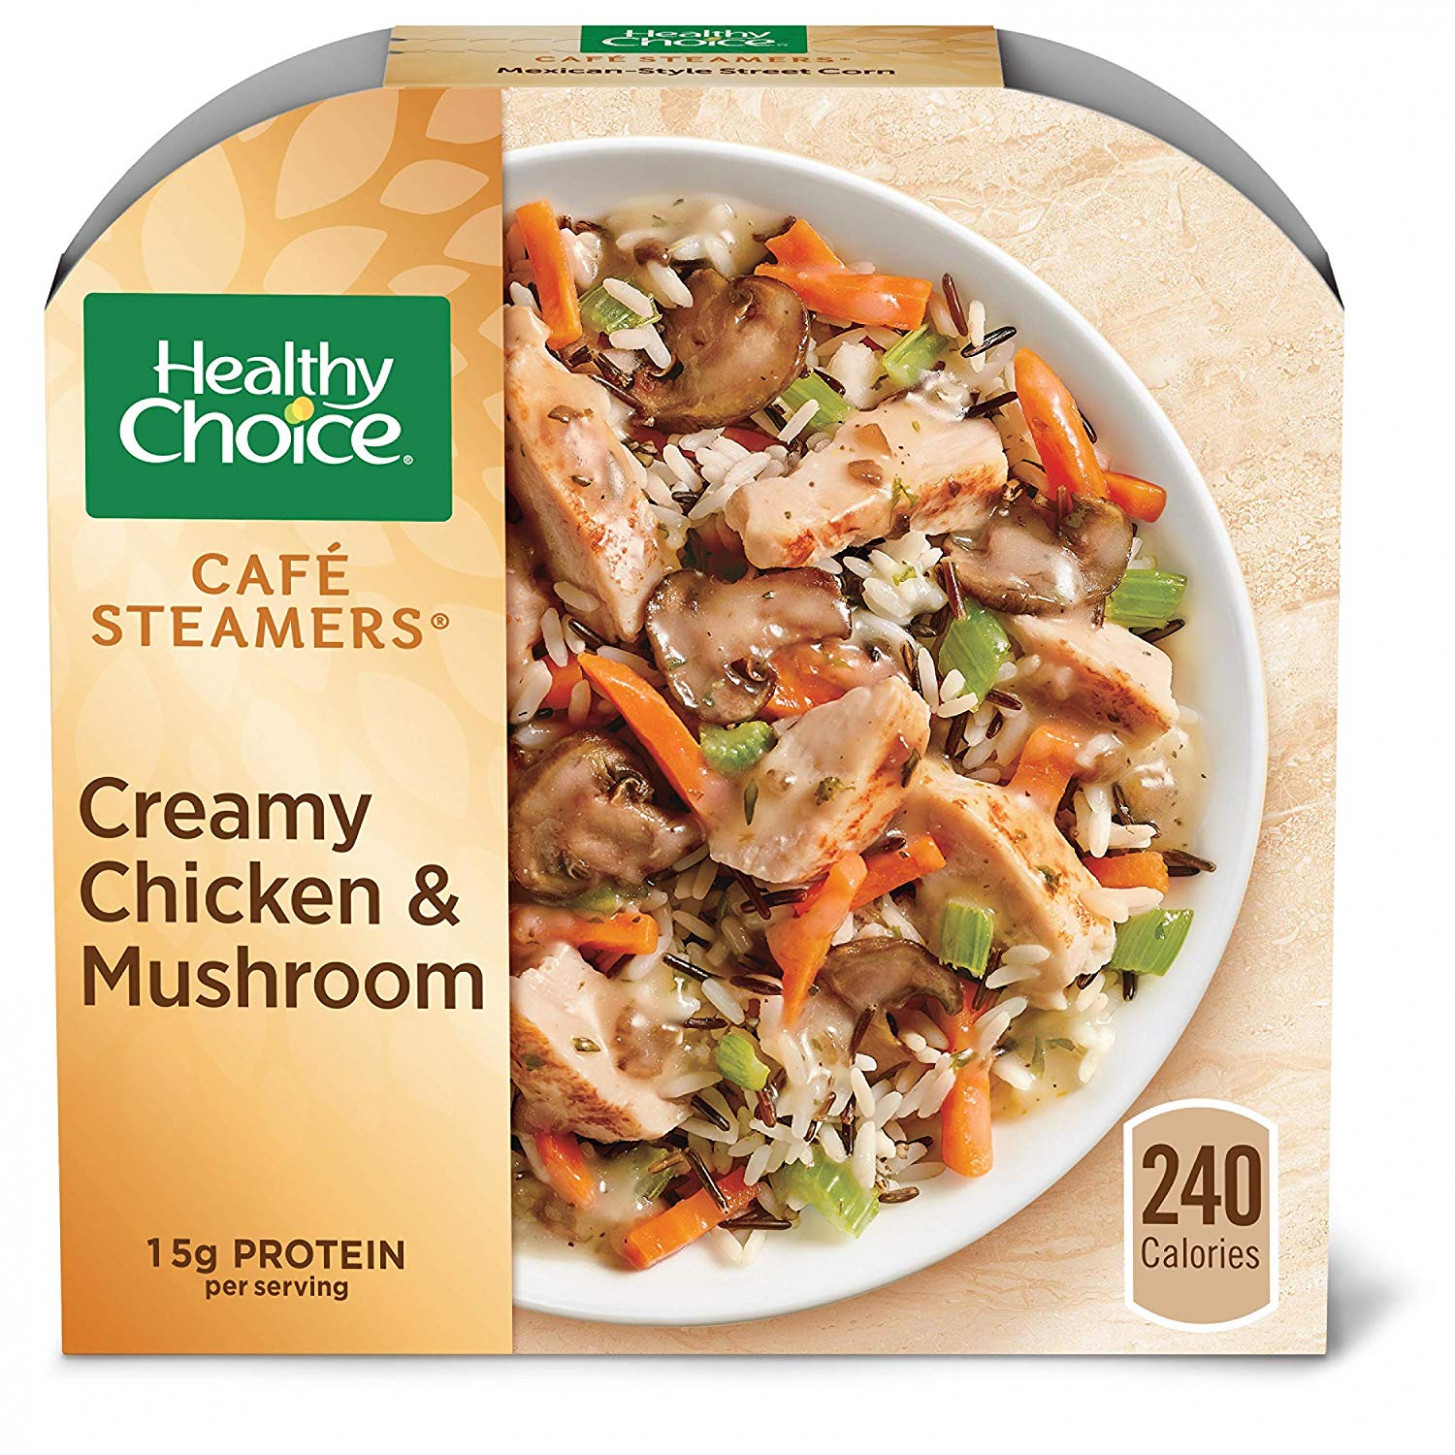 Healthy Choice Café Steamers Creamy Chicken Mushroom Frozen Meal, 11.11 Oz